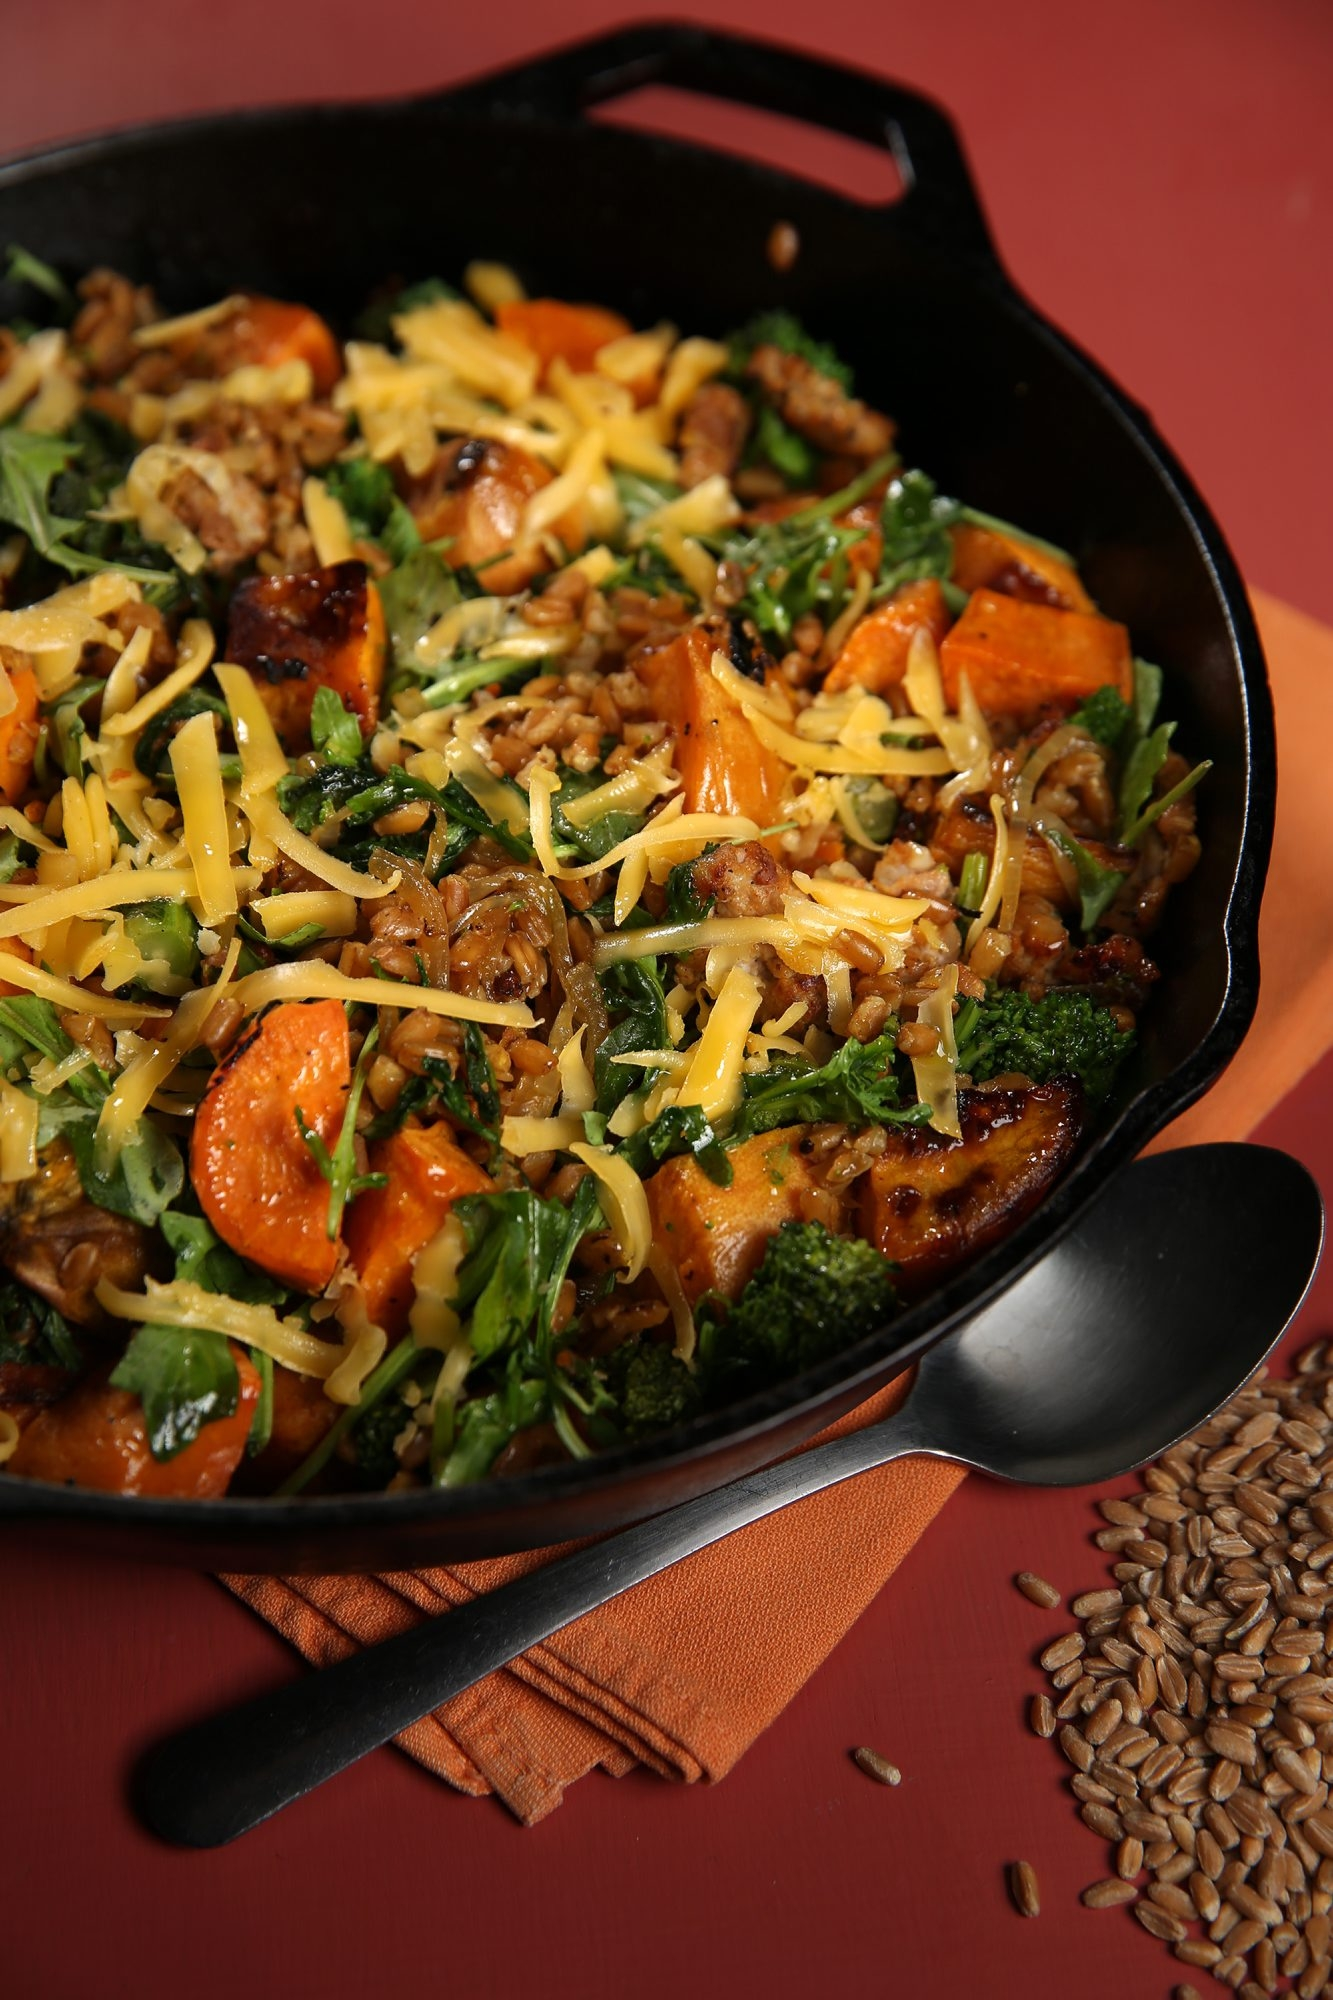 A farro-based recipe gets support from roasted sweet potatoes, broccoli rabe, cheese and Italian sausage.